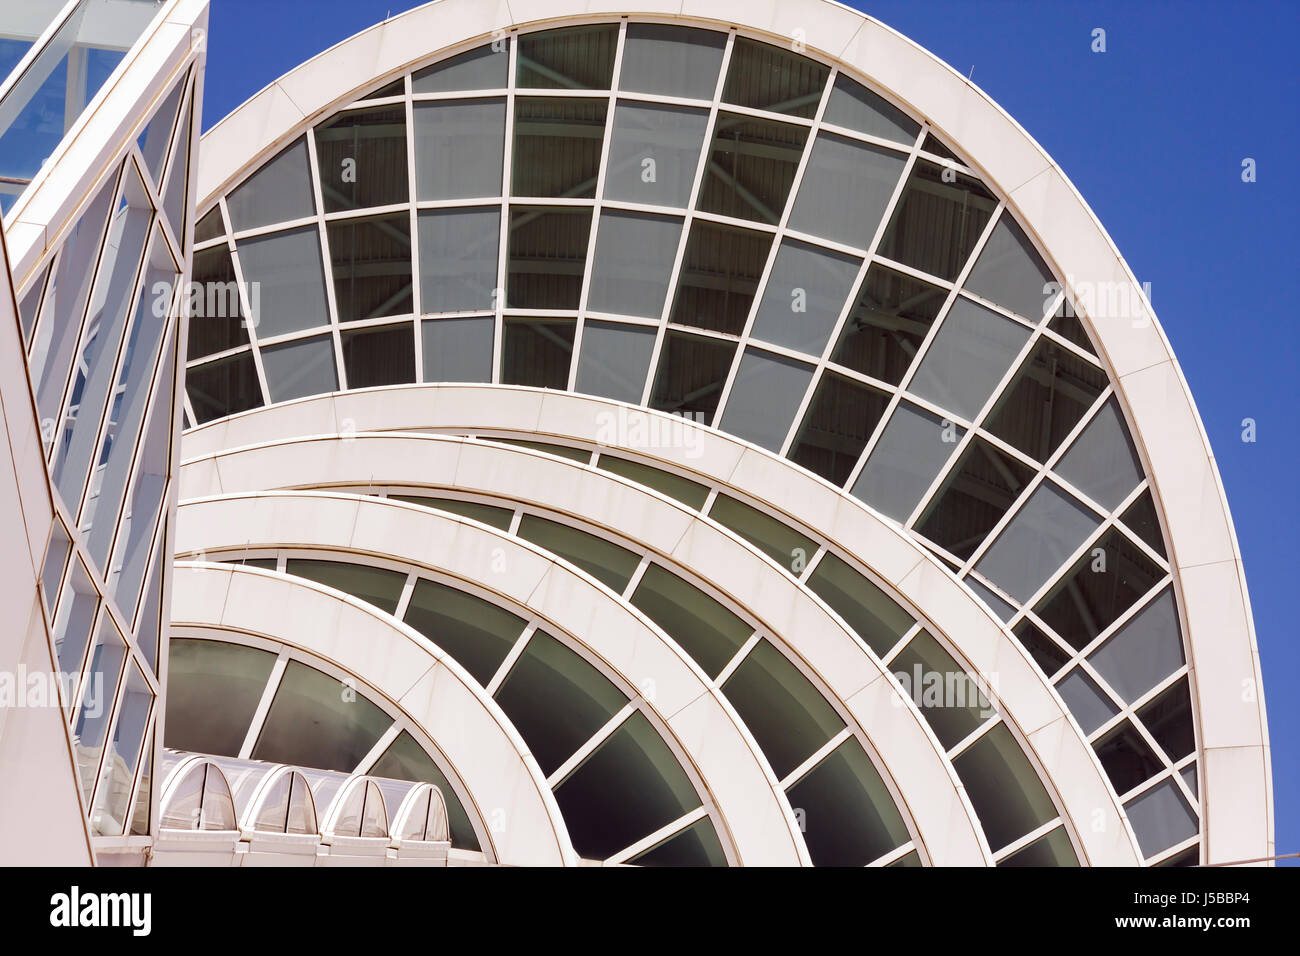 orlando florida orange county convention center centre arches windows stock photo royalty free. Black Bedroom Furniture Sets. Home Design Ideas